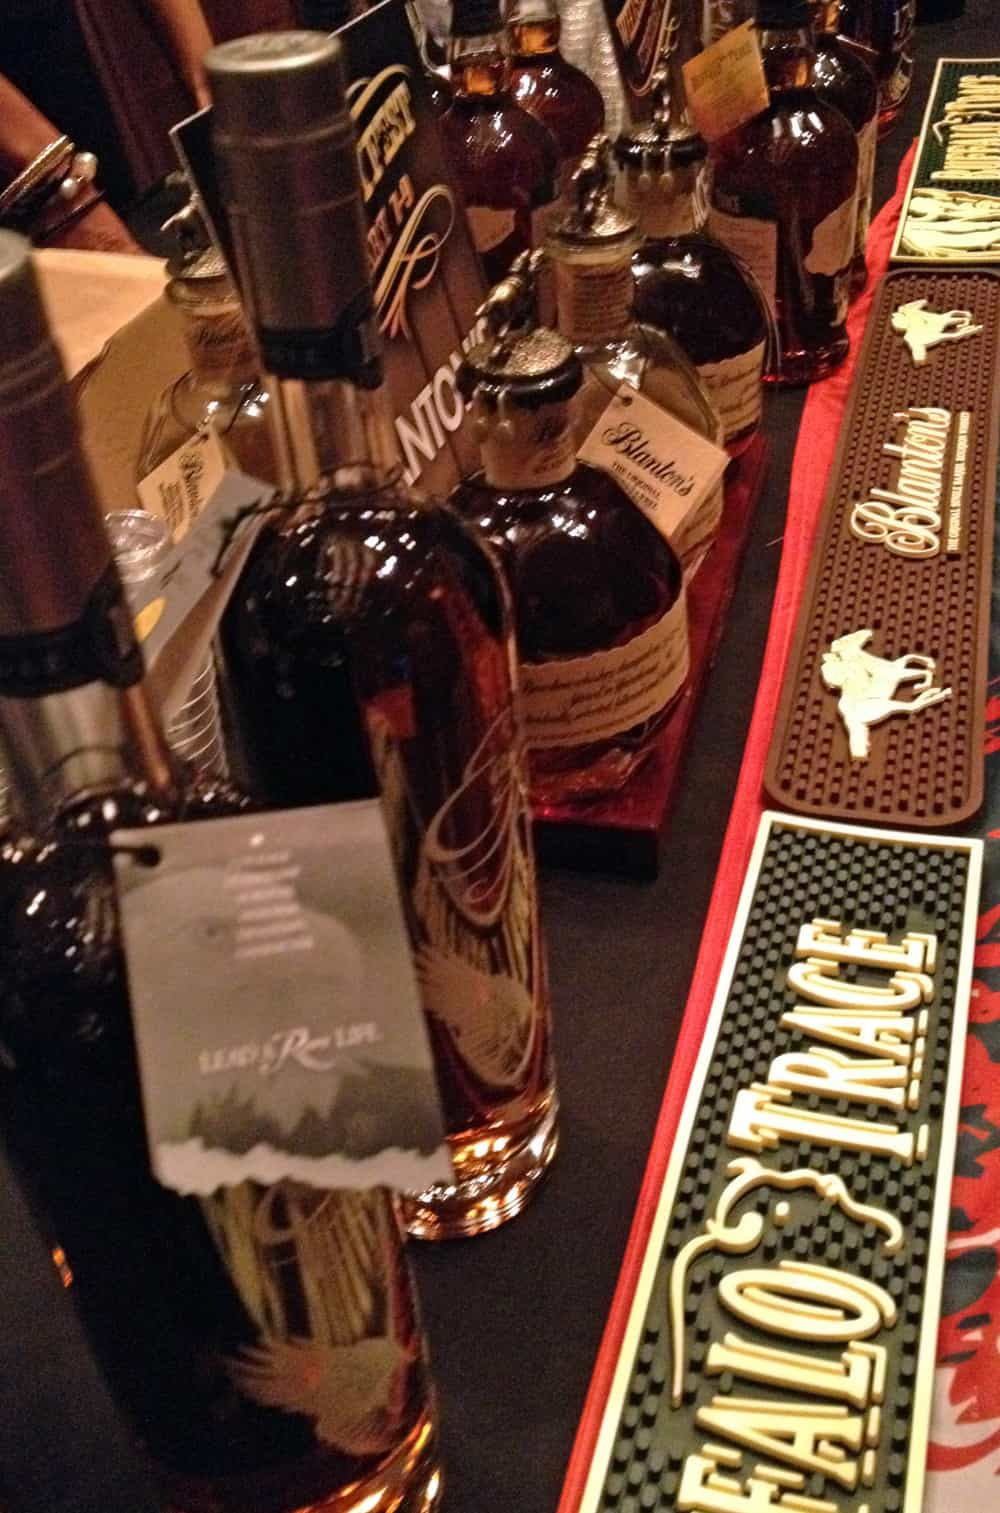 WhiskeyFest2014 - choices, choices, Las Vegas, NV